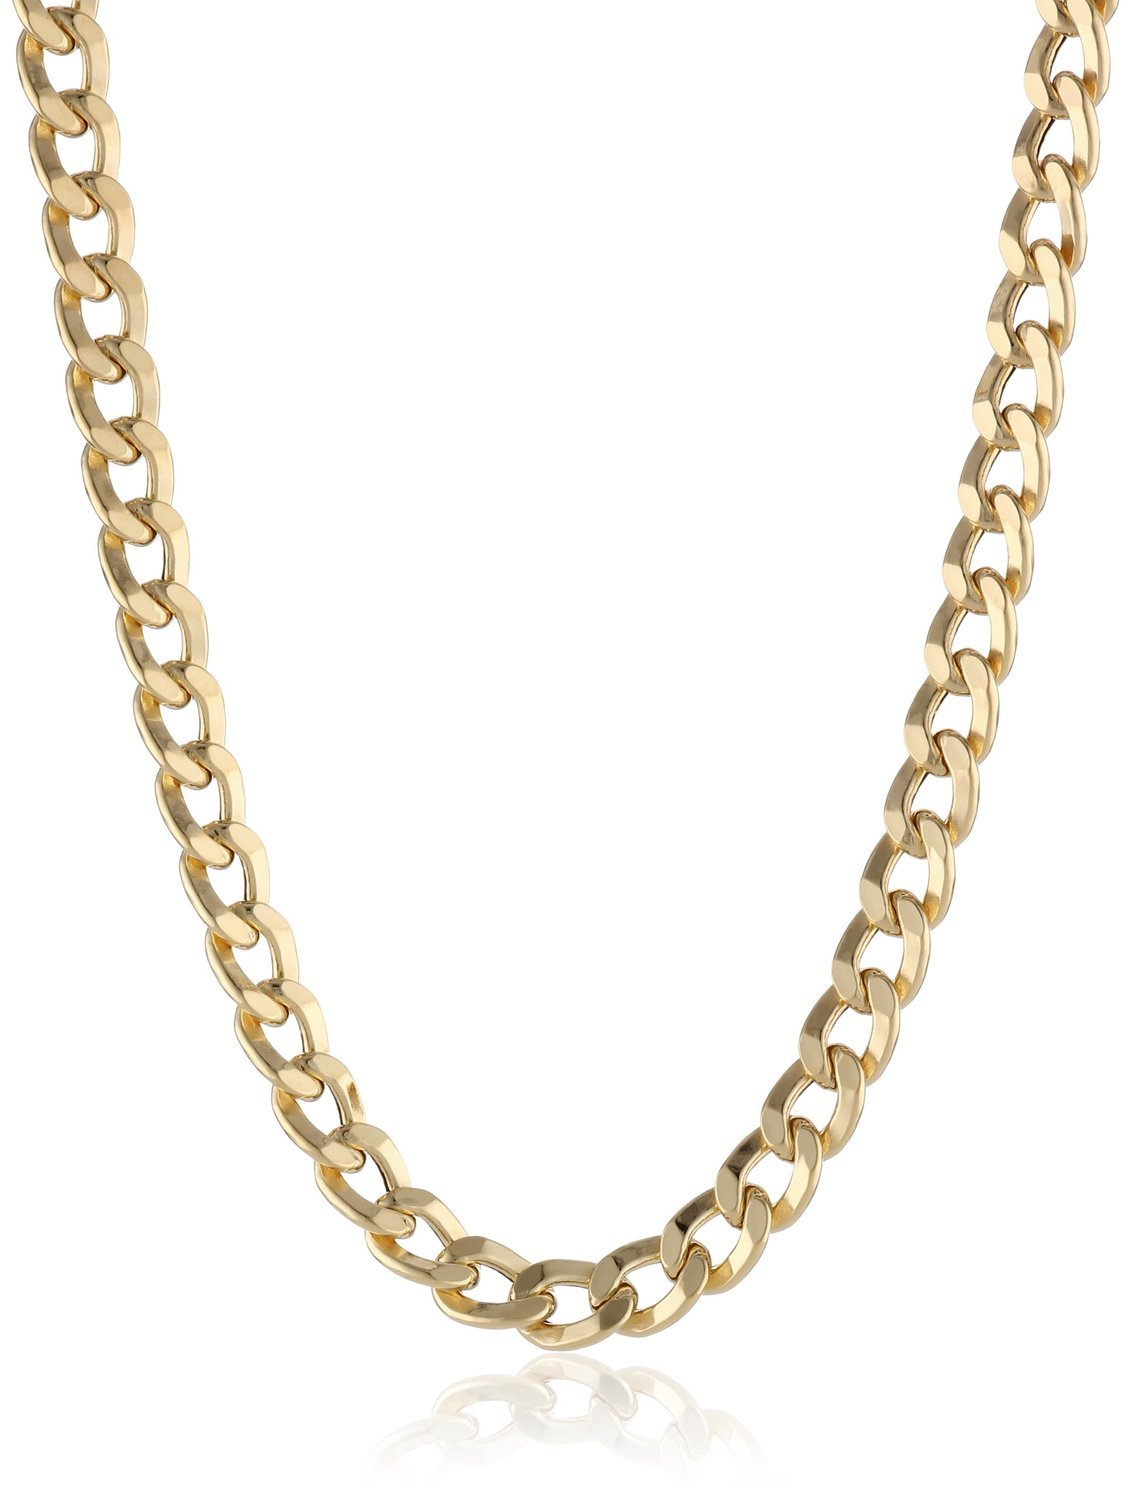 14K Solid Yellow Gold 3.8mm Cuban Curb Link Chain Necklace- Lobster Claw Clasp- 24''